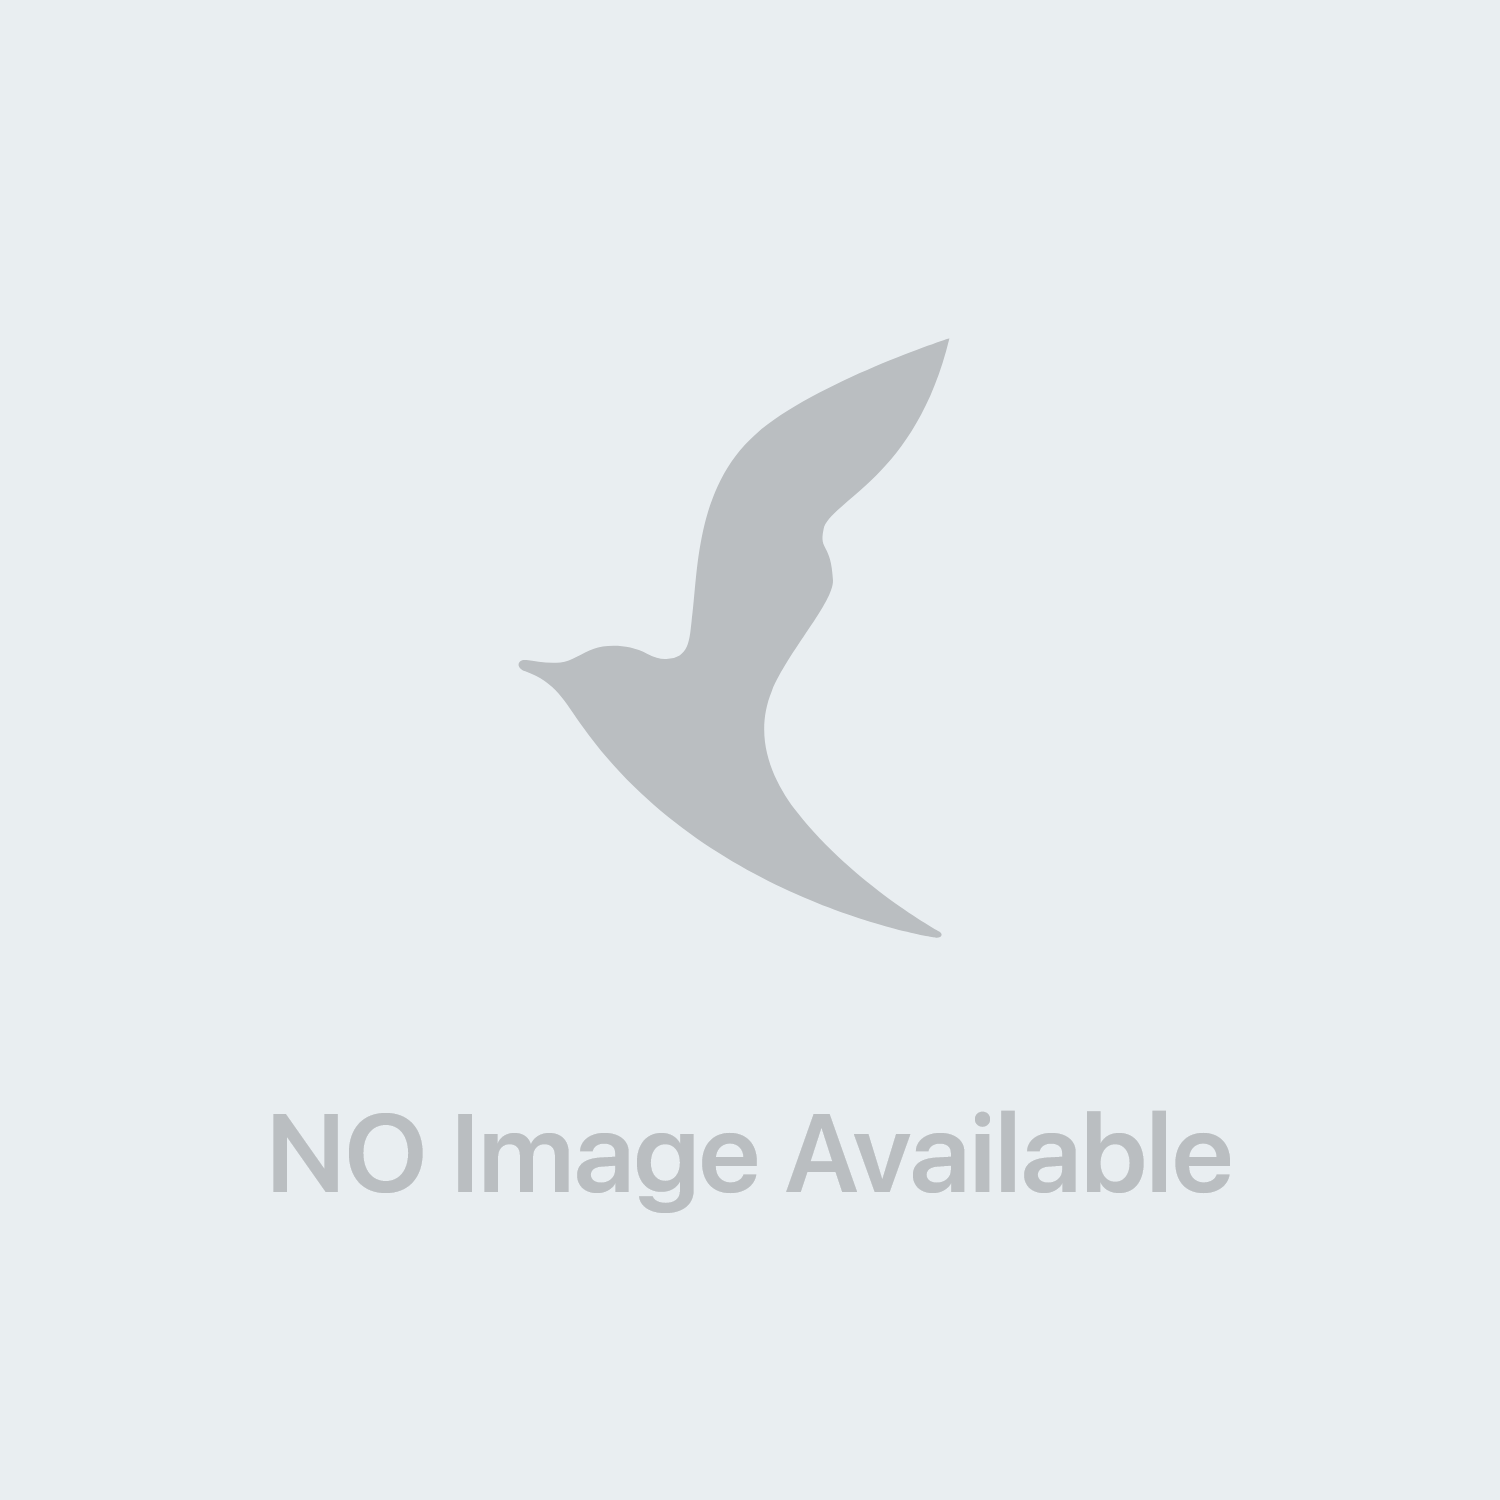 Ensure Compact Integratore Gusto Fragola 4x125 ml